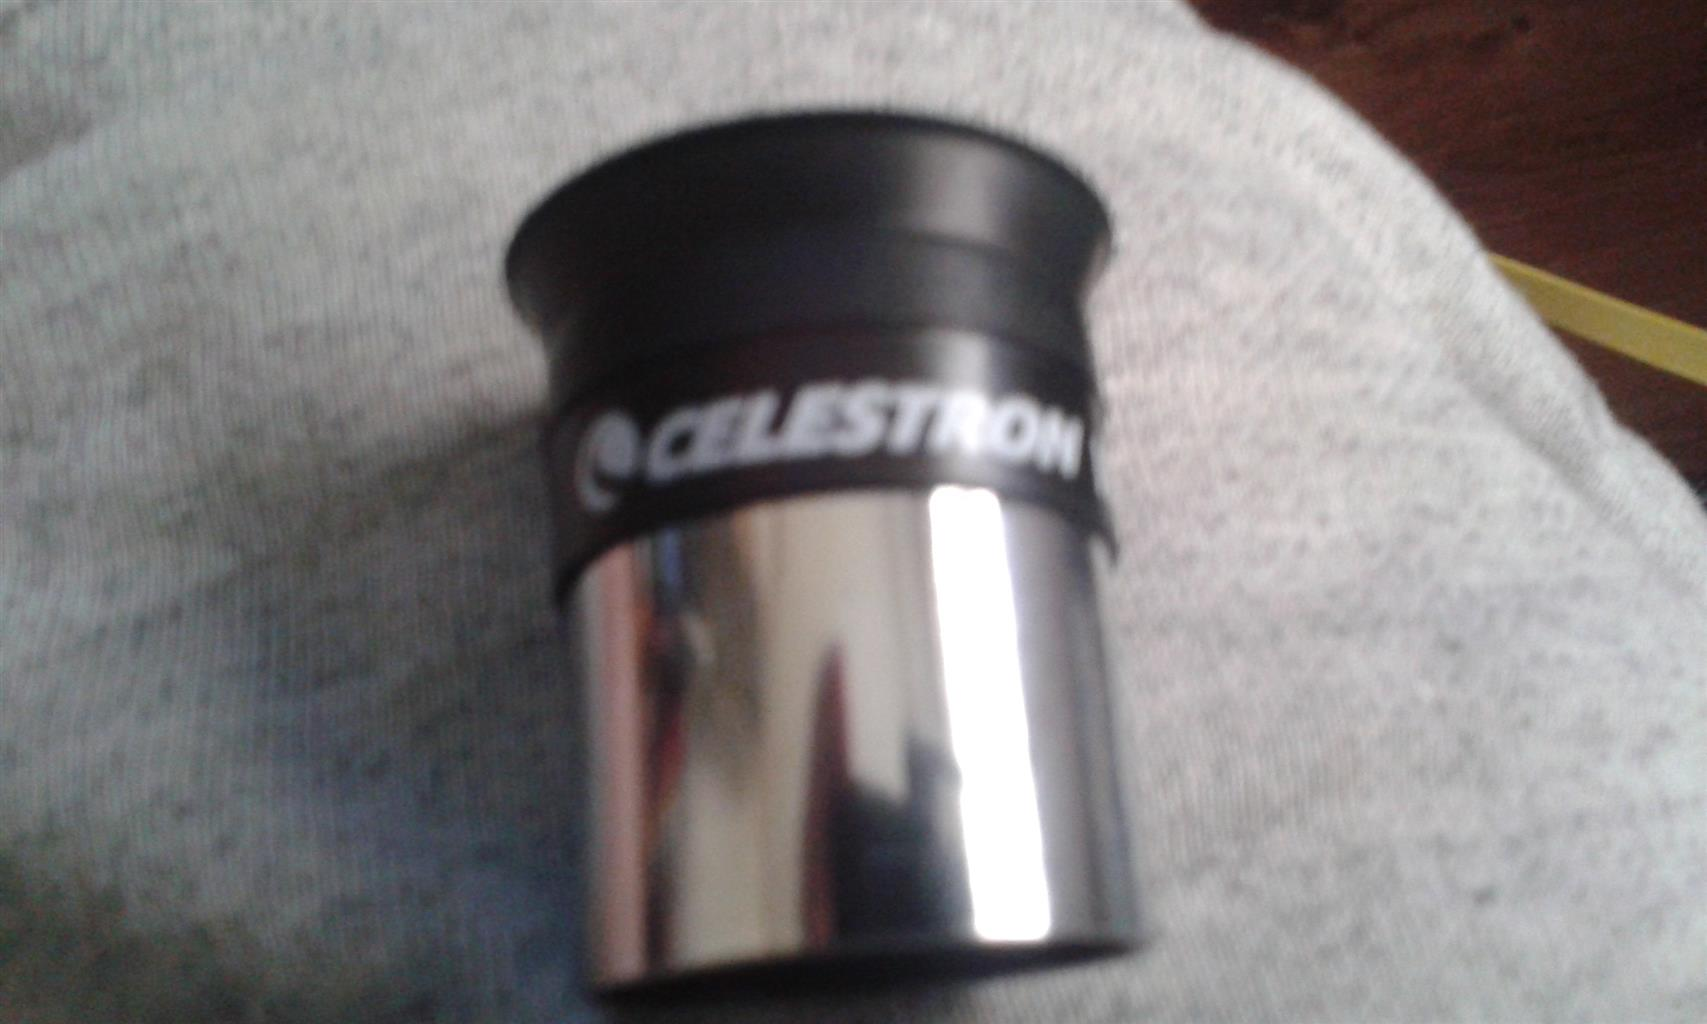 Celestron 10mm lens for telescope